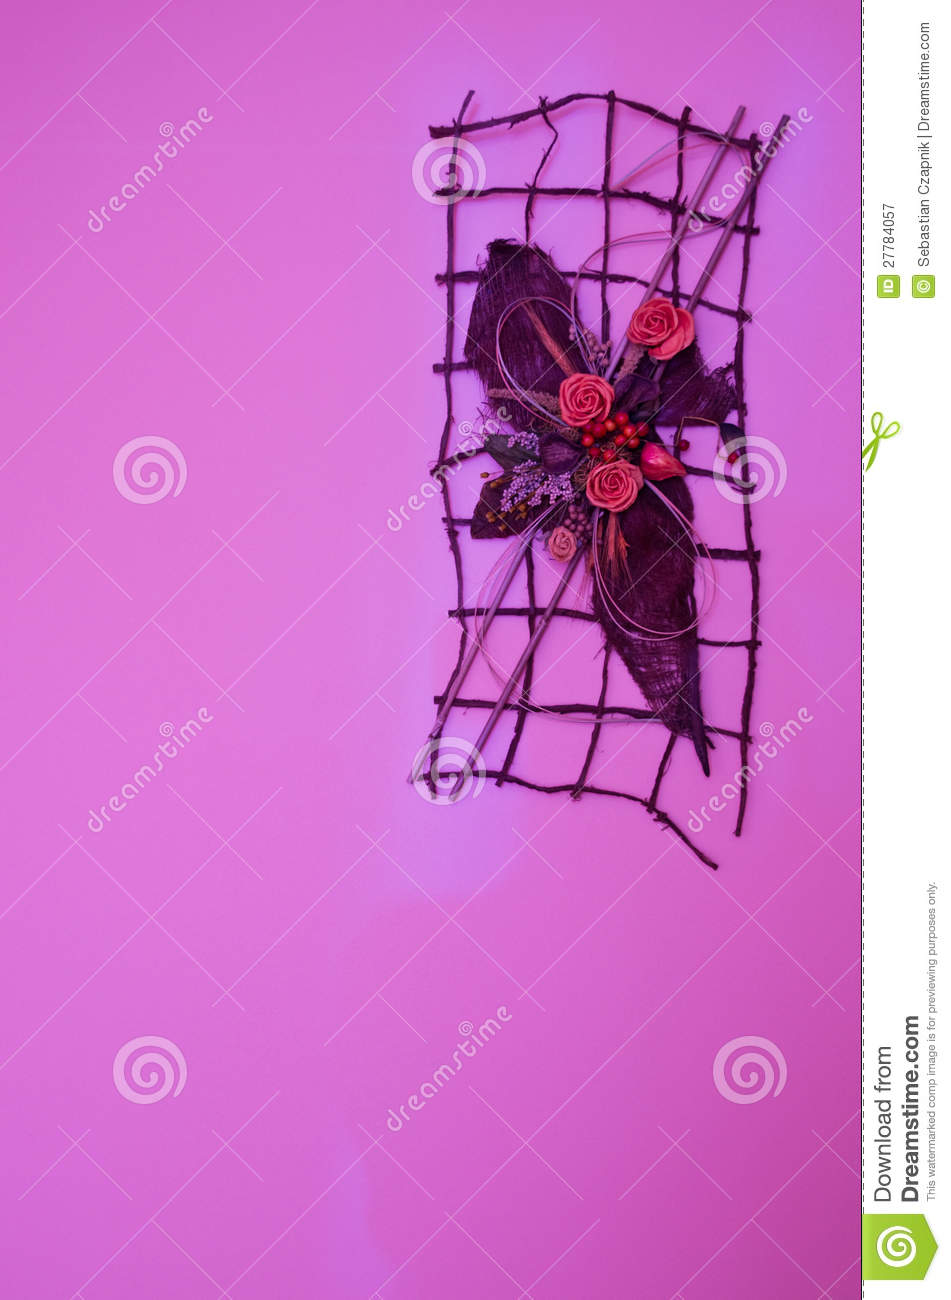 Wall Design Violet : Violet wall decoration royalty free stock photography